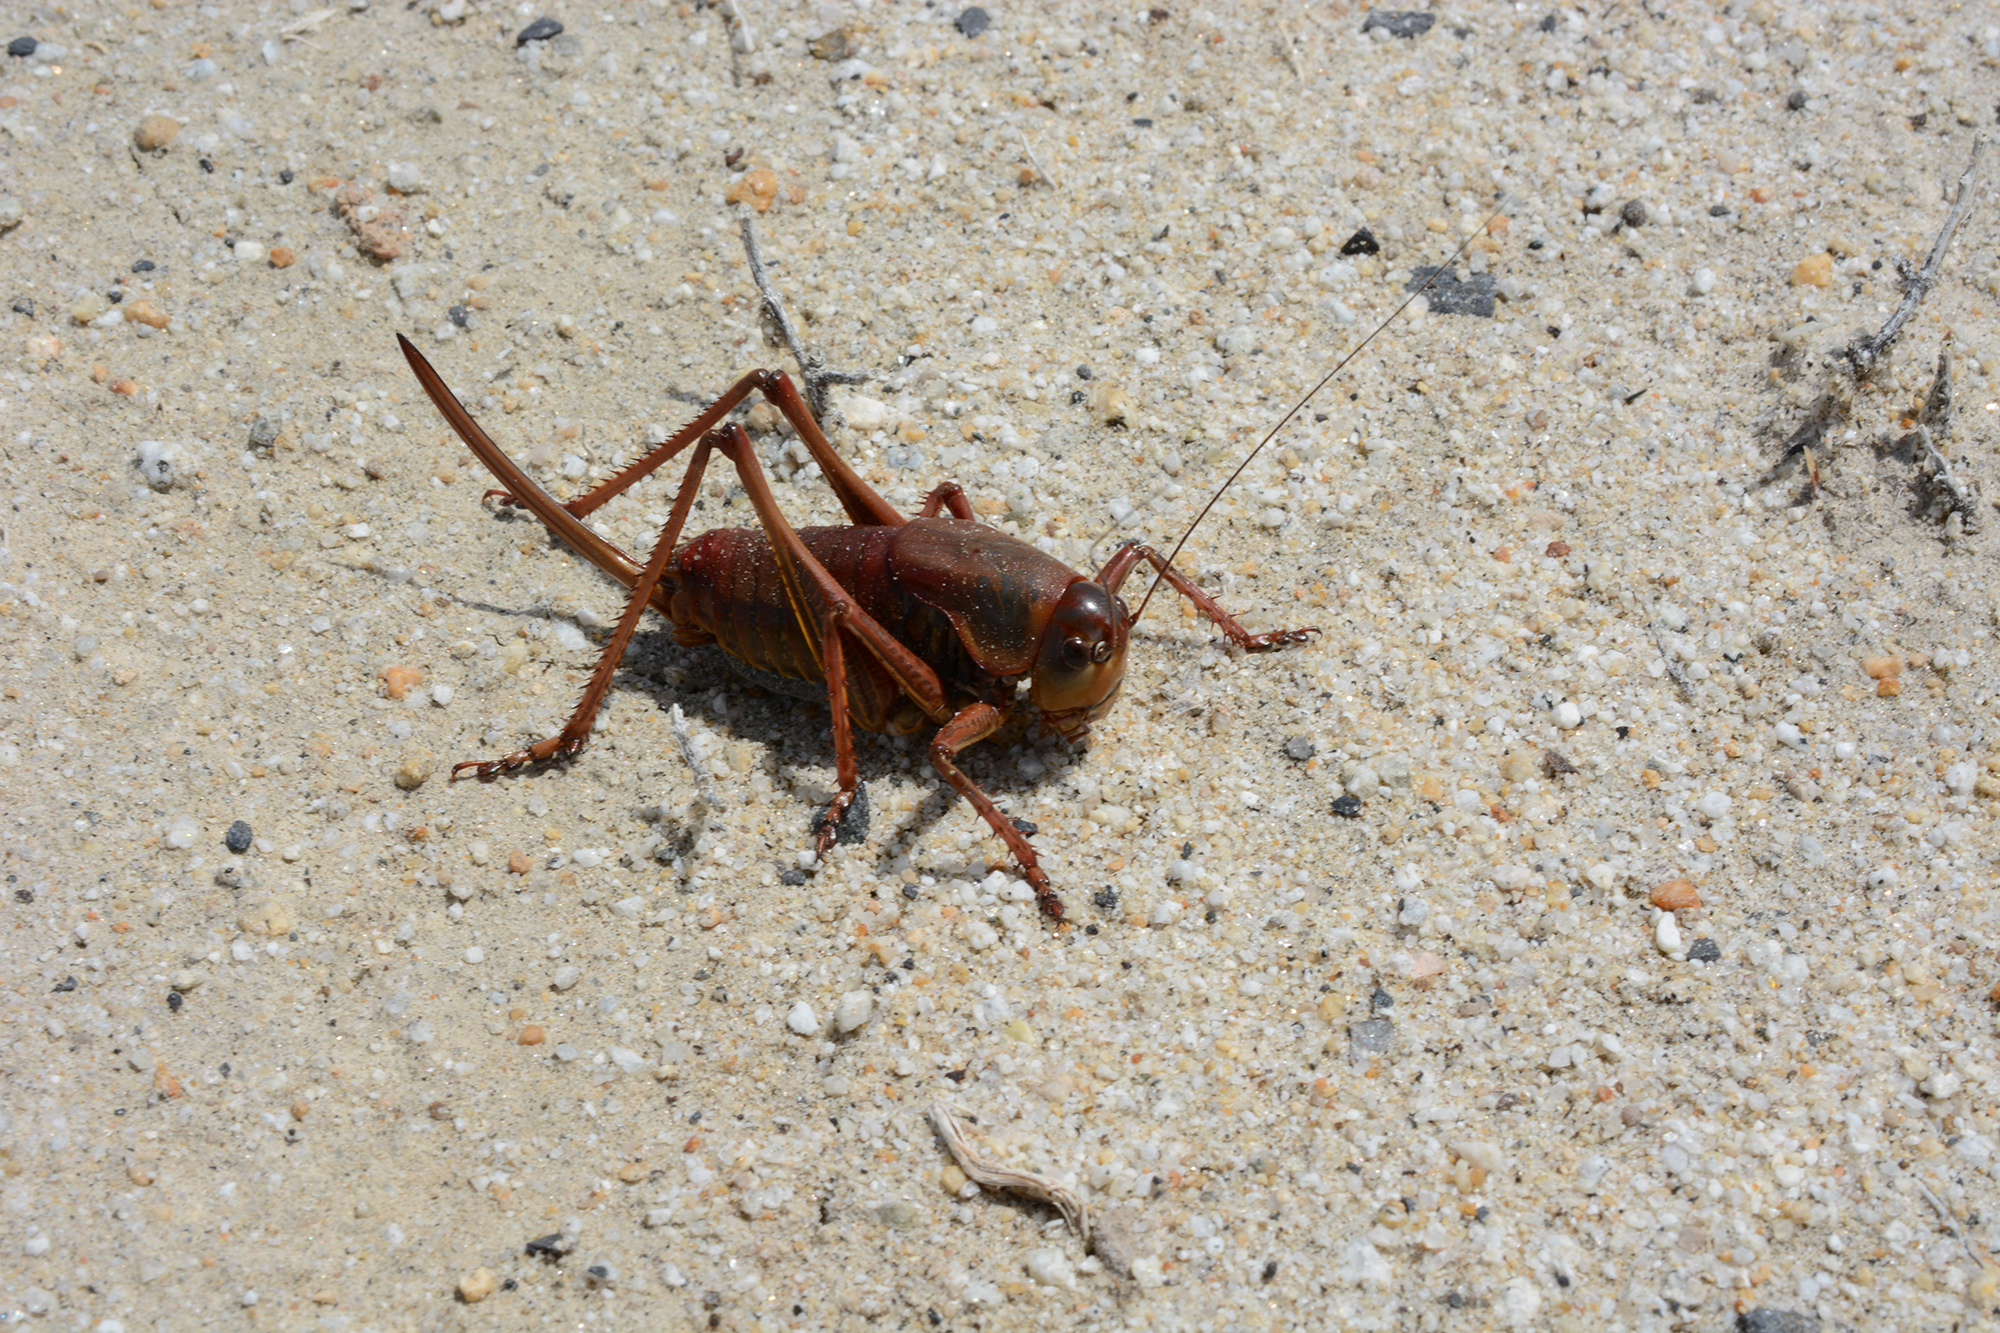 Report Mormon cricket sightings to the Entomology Laboratory.